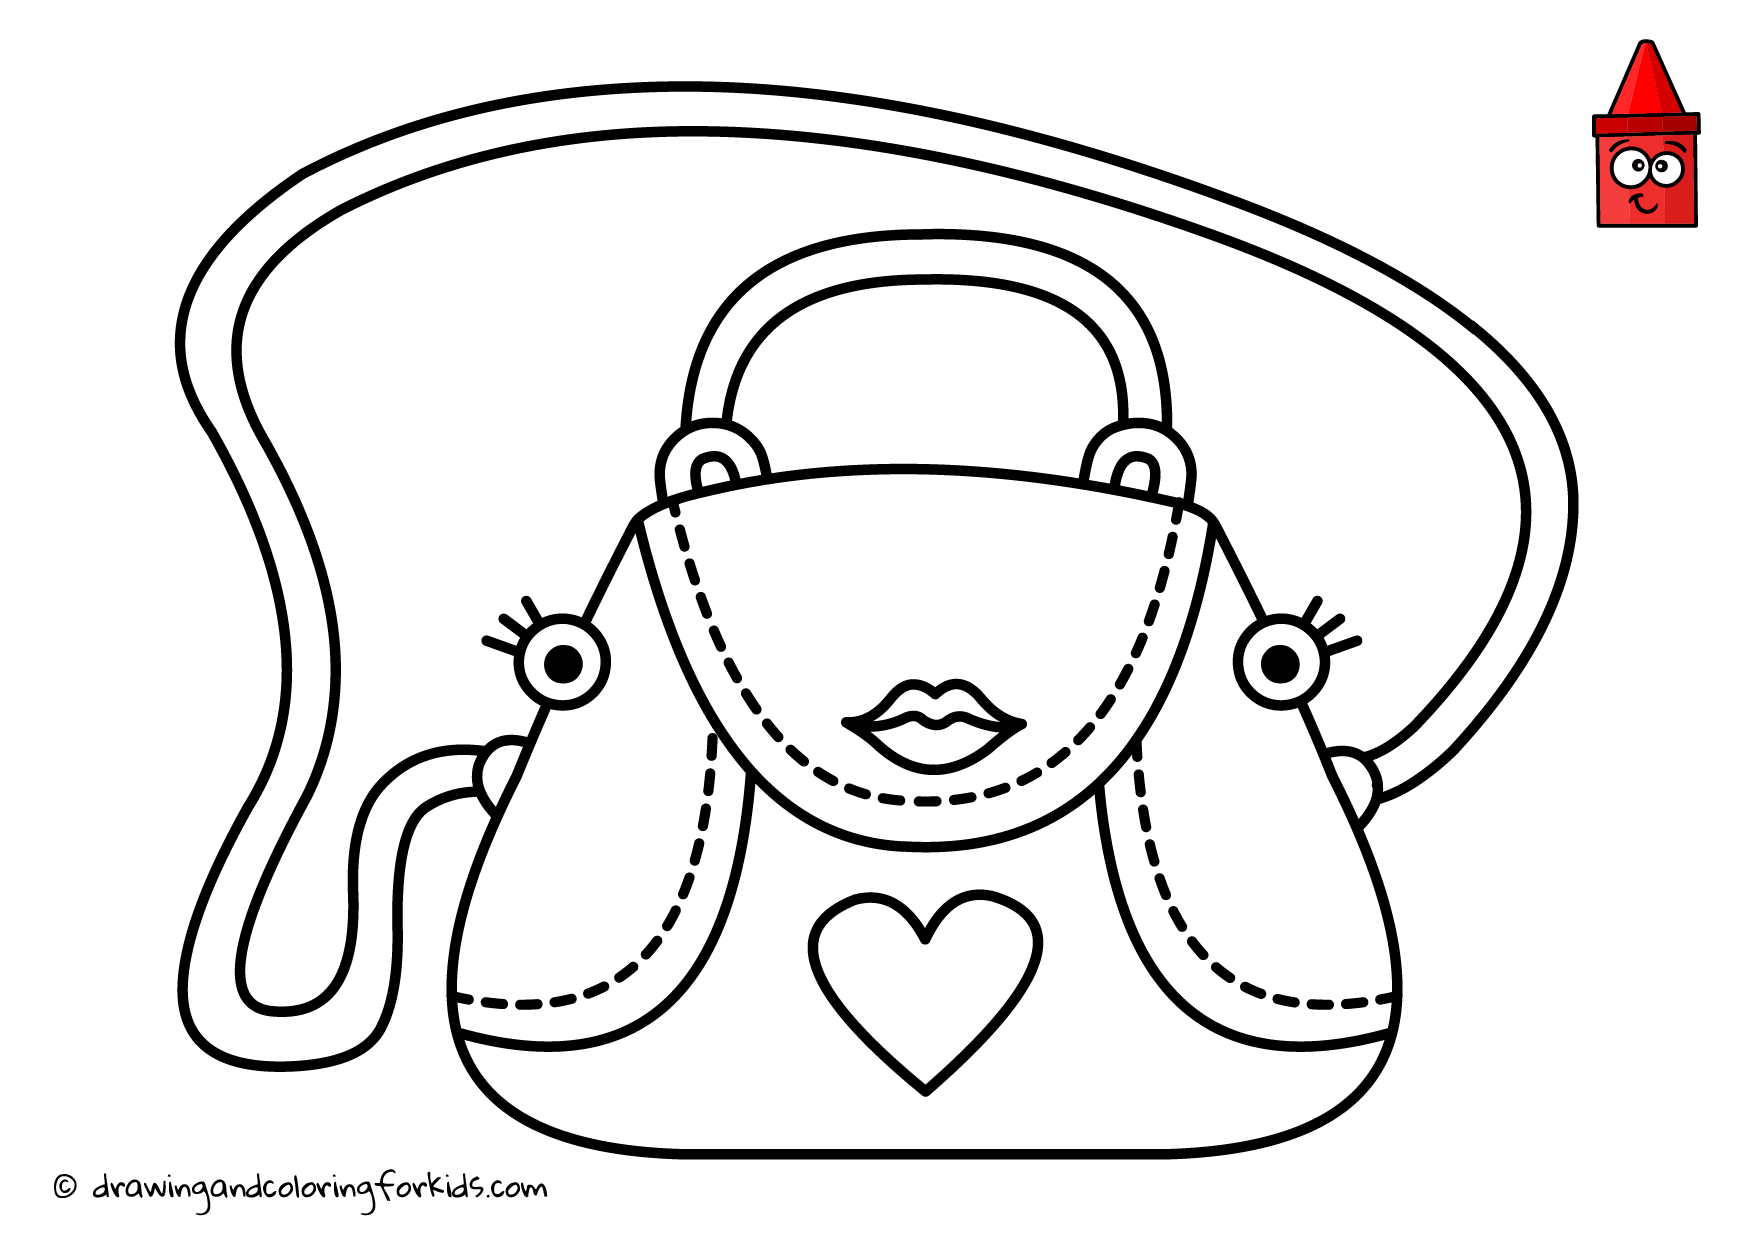 purse coloring page pretty fashion bag coloring page for girls printable free purse coloring page